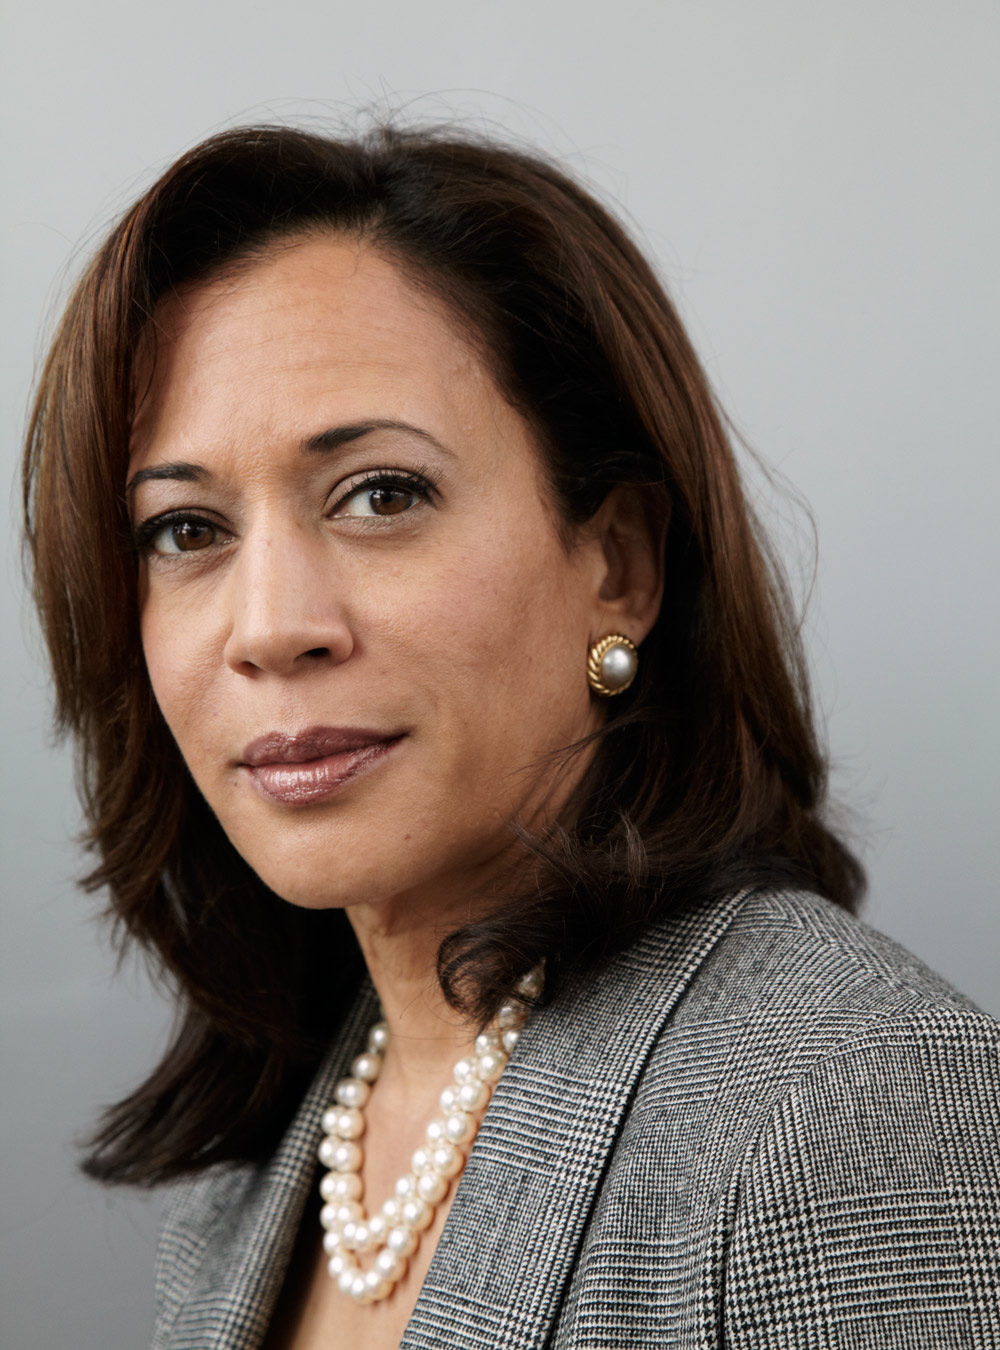 Kamala Harris is having a moment But the Berniewing of the Democratic party is highly skeptical